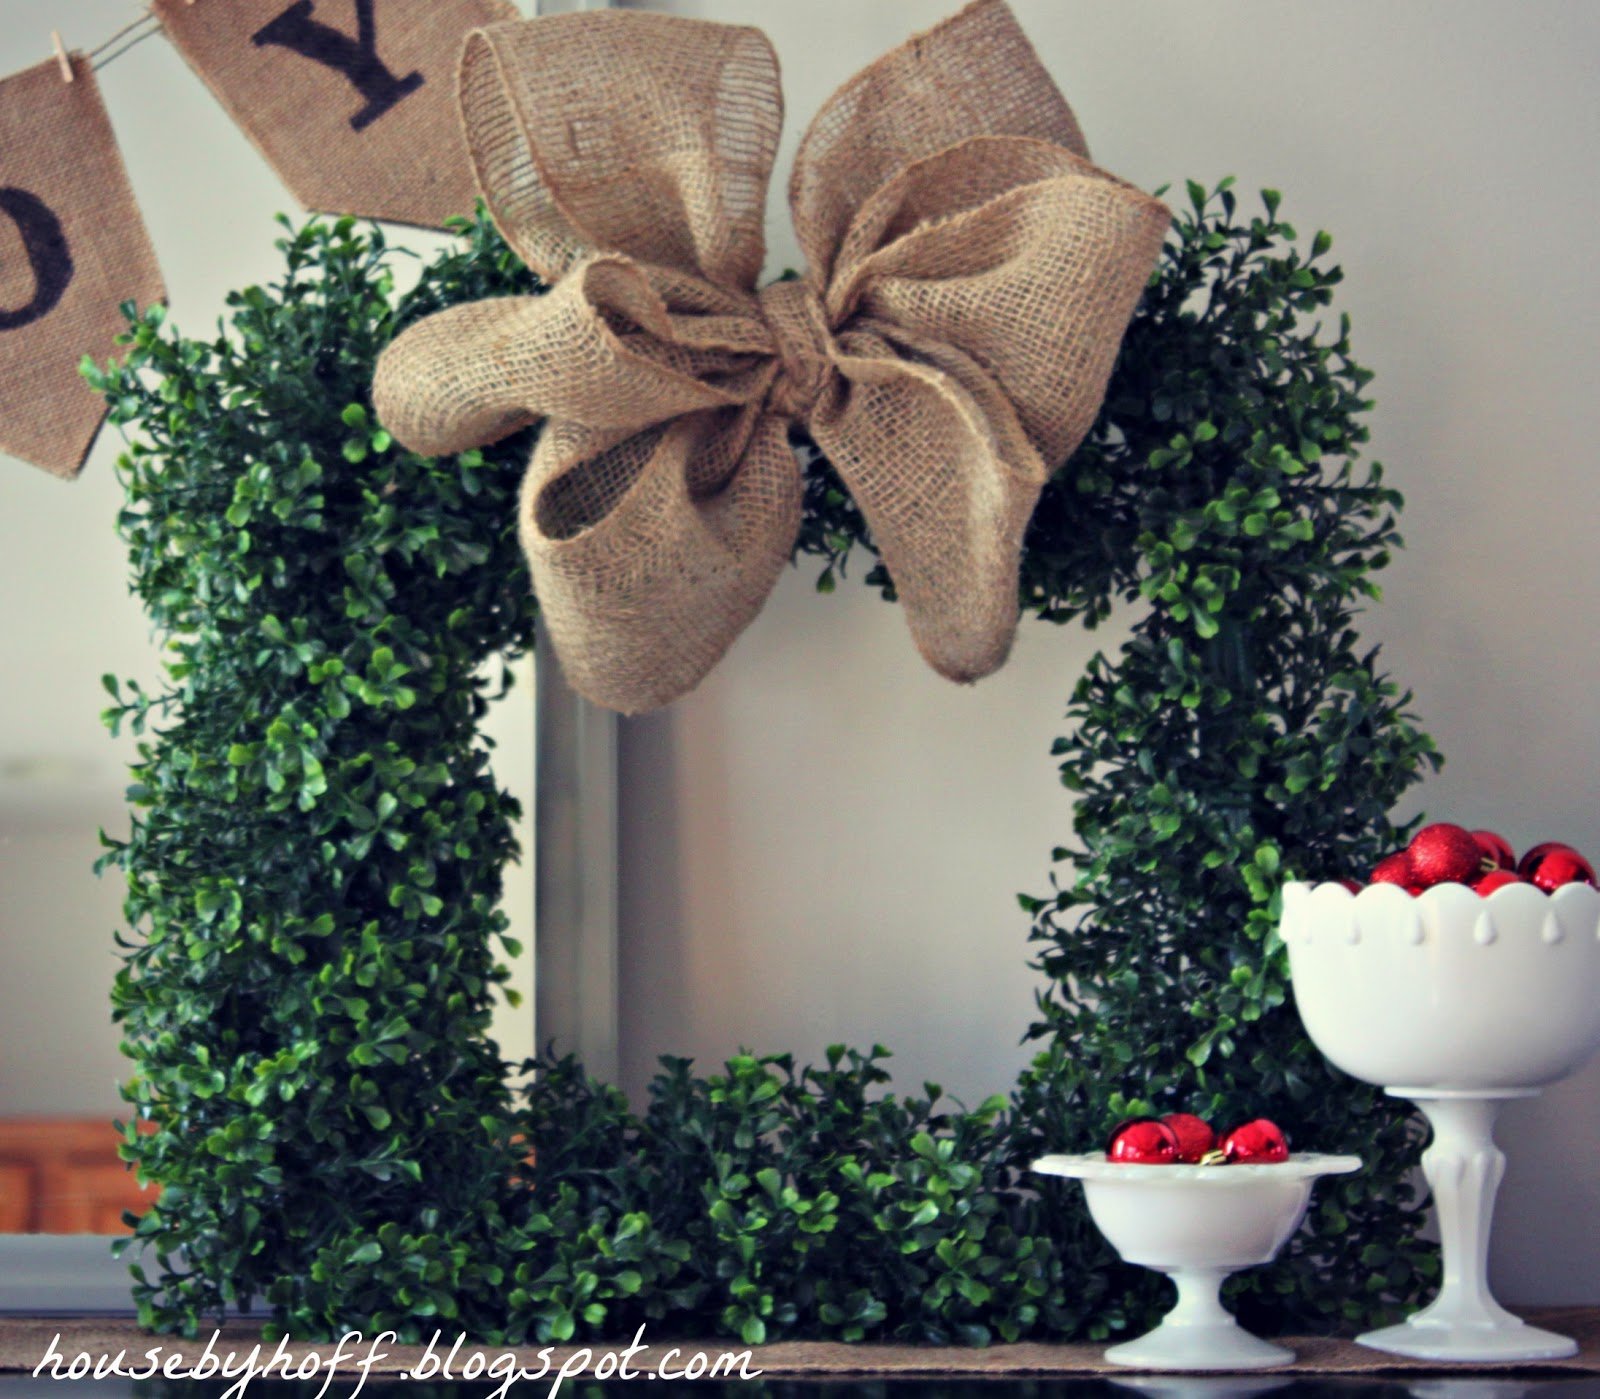 DIY Square Boxwood Wreath with Burlap Bow - House by Hoff